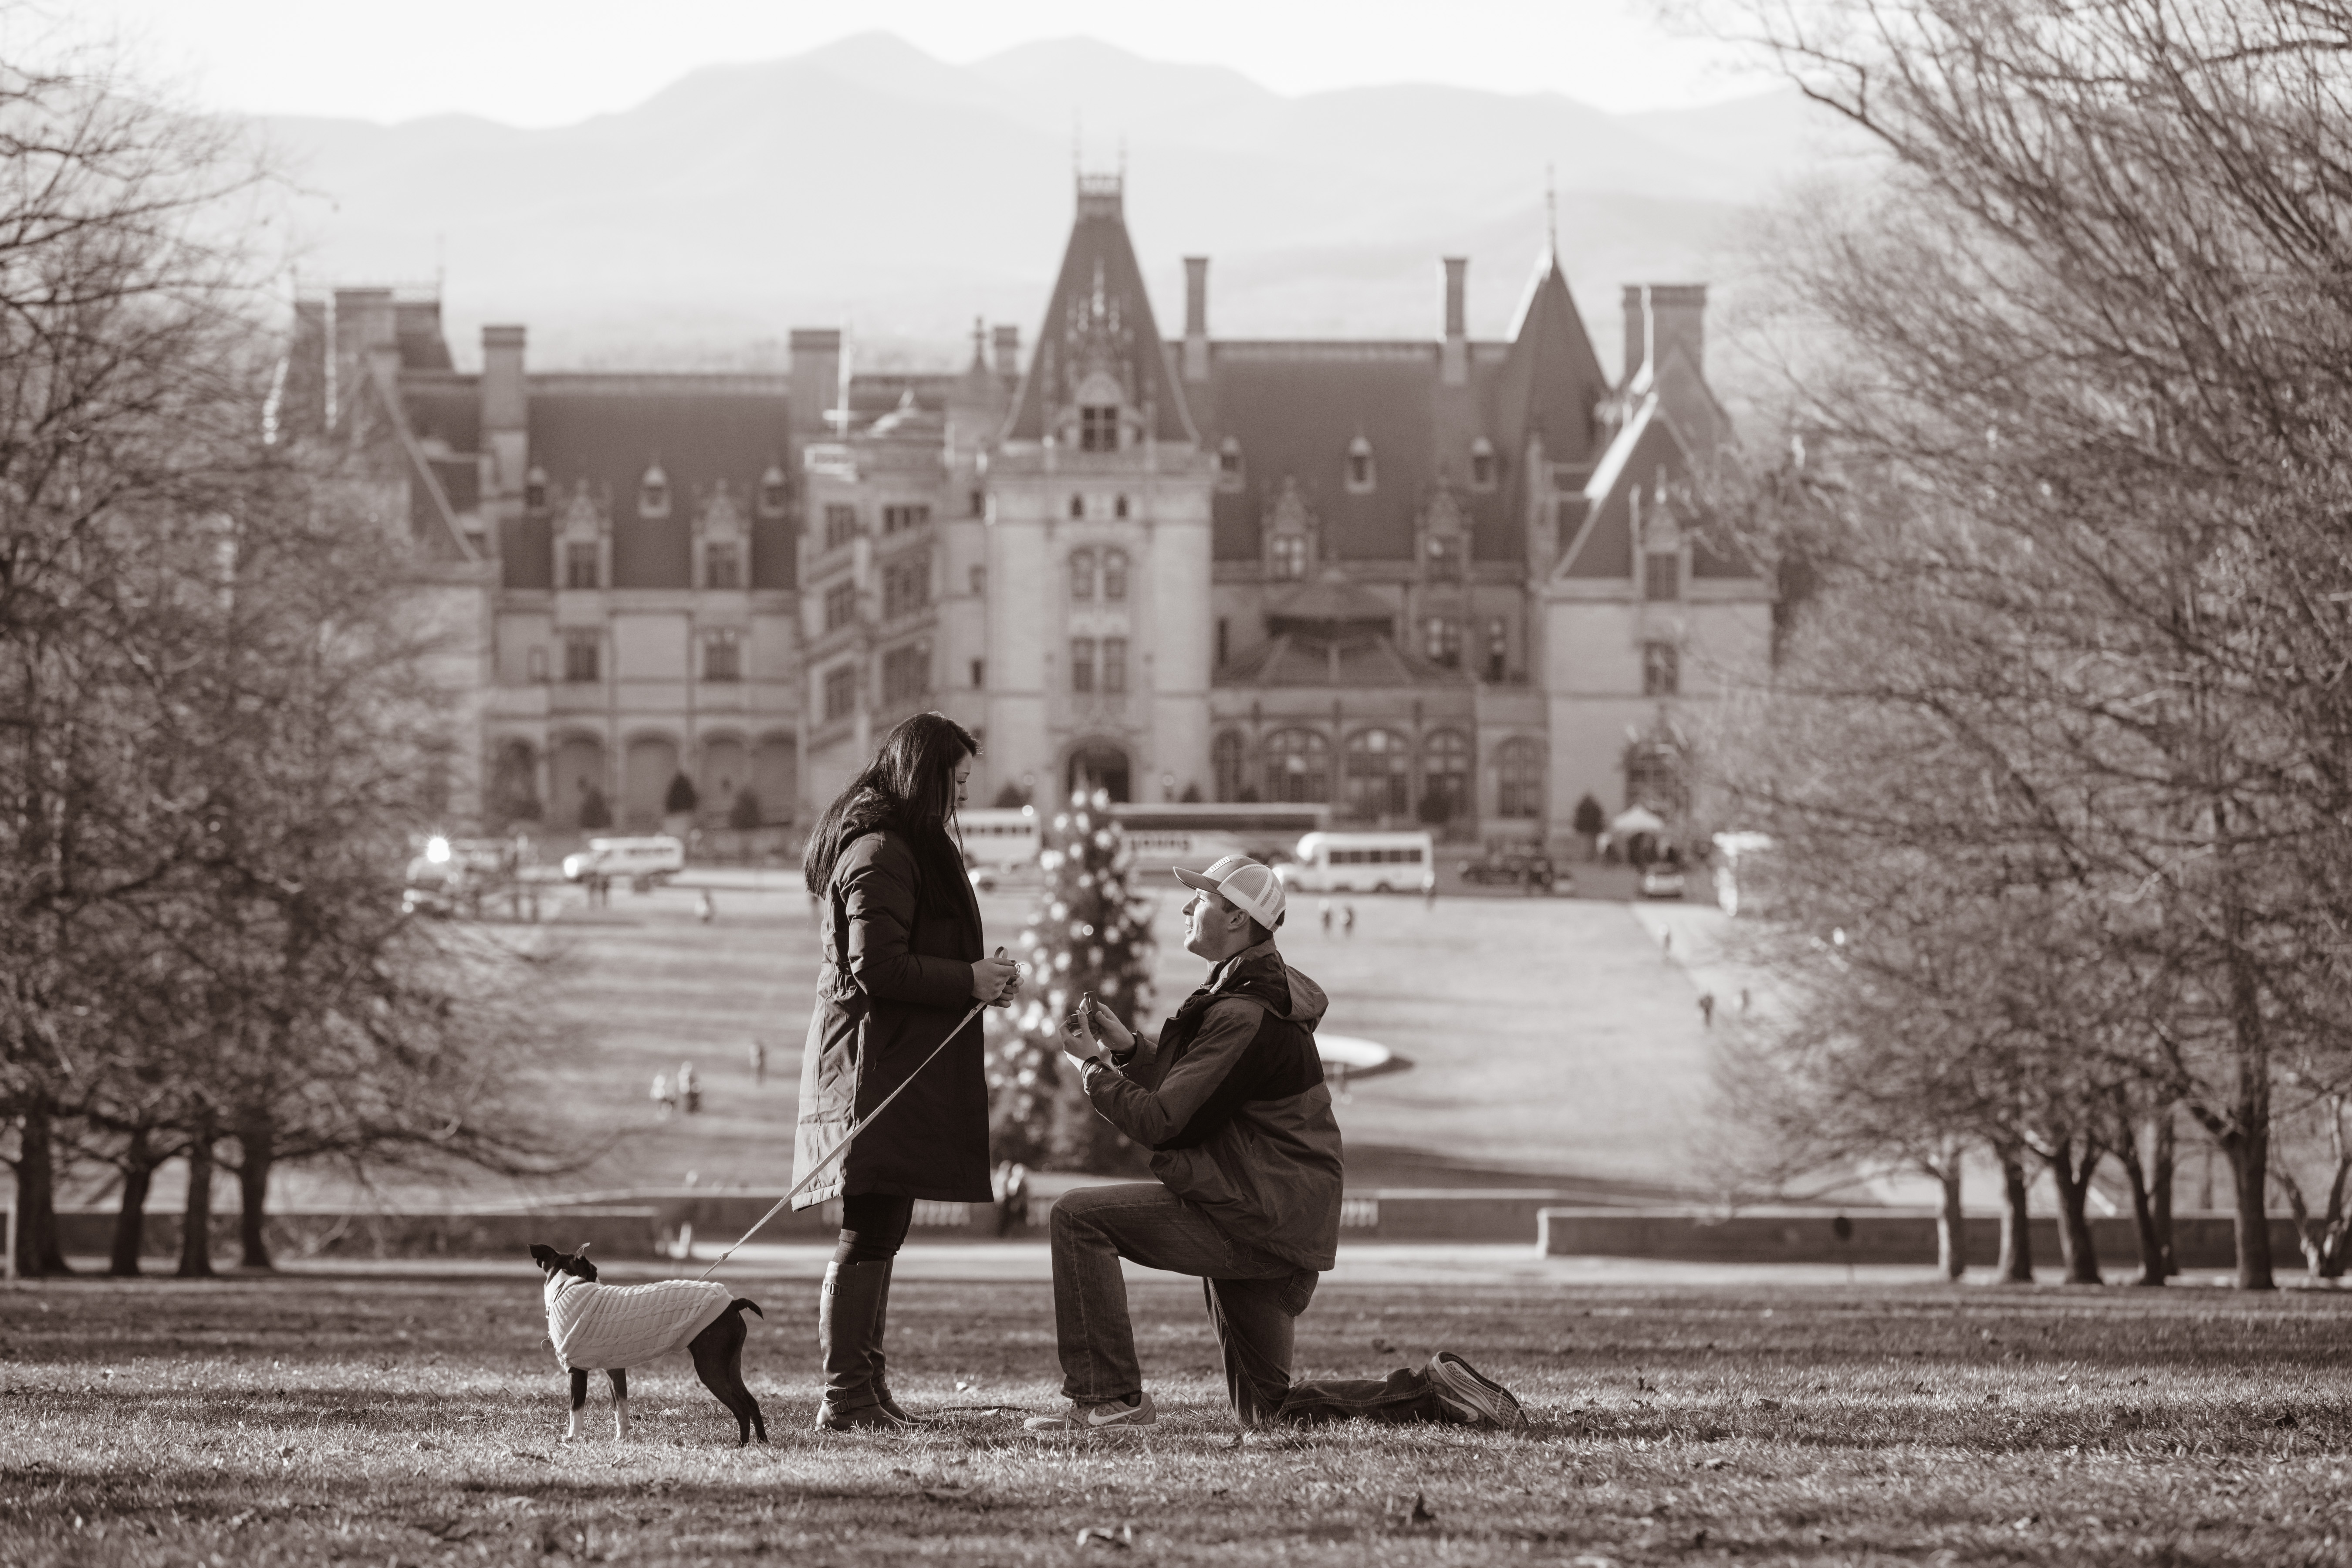 "Taylor Shirley on one knee surprising his girlfriend by proposing on Diana Hill at the Biltmore Estate in Asheville NC. The couple are in front with Taylor holding box holding the engagement ring asking her ""Will you marry me"". The Biltmore and Blue Ridge Mountains are in the background."